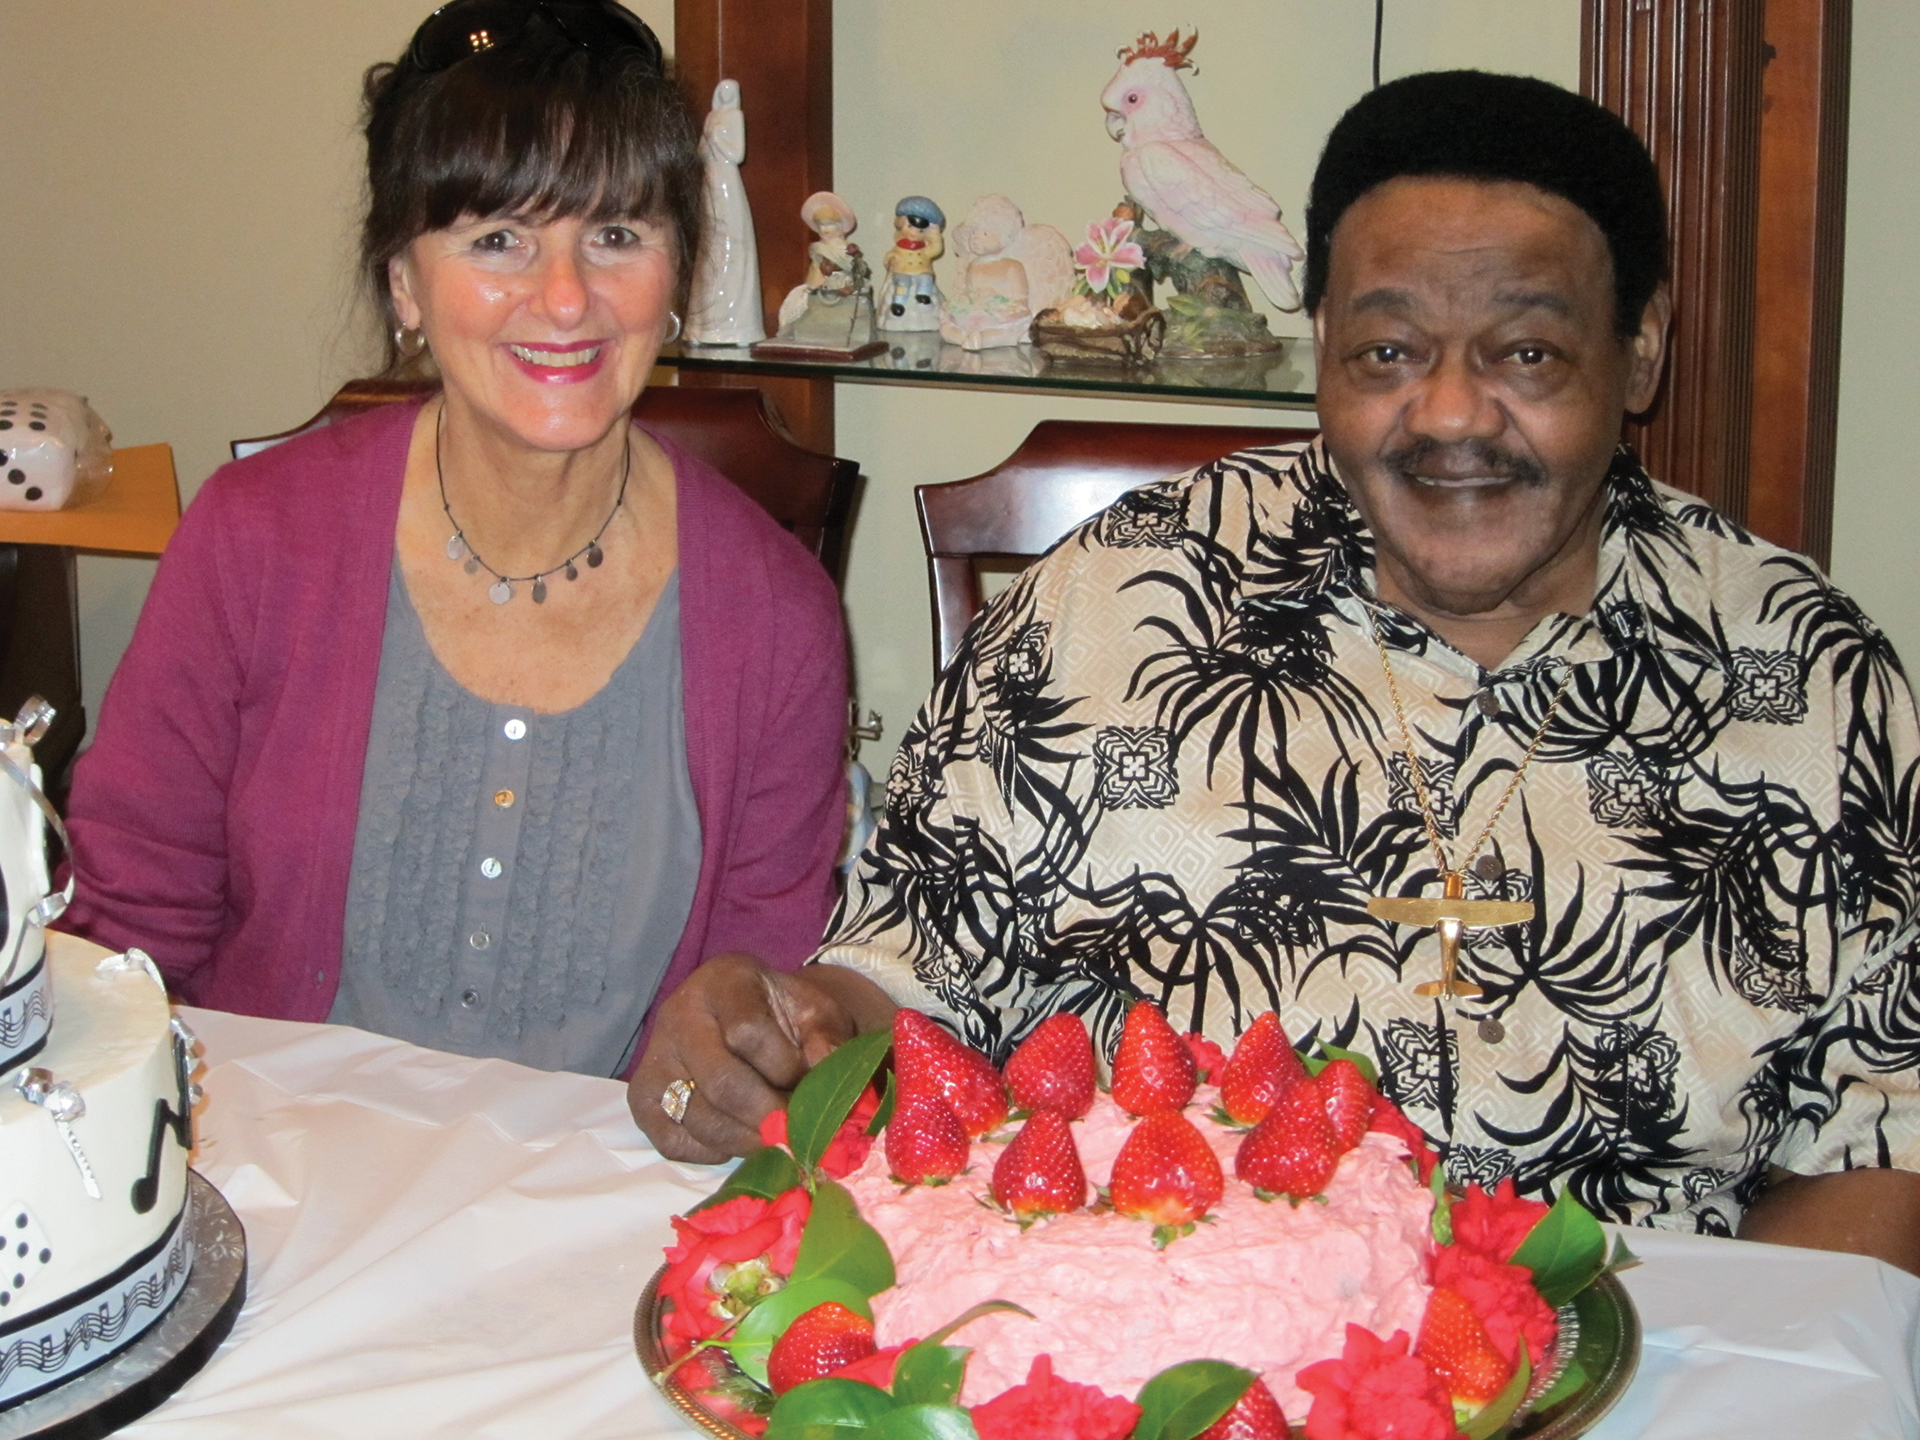 Haydee Ellis, and the legendary Fats Domino with his birthday strawberry cake, wearing his ever-present smile.